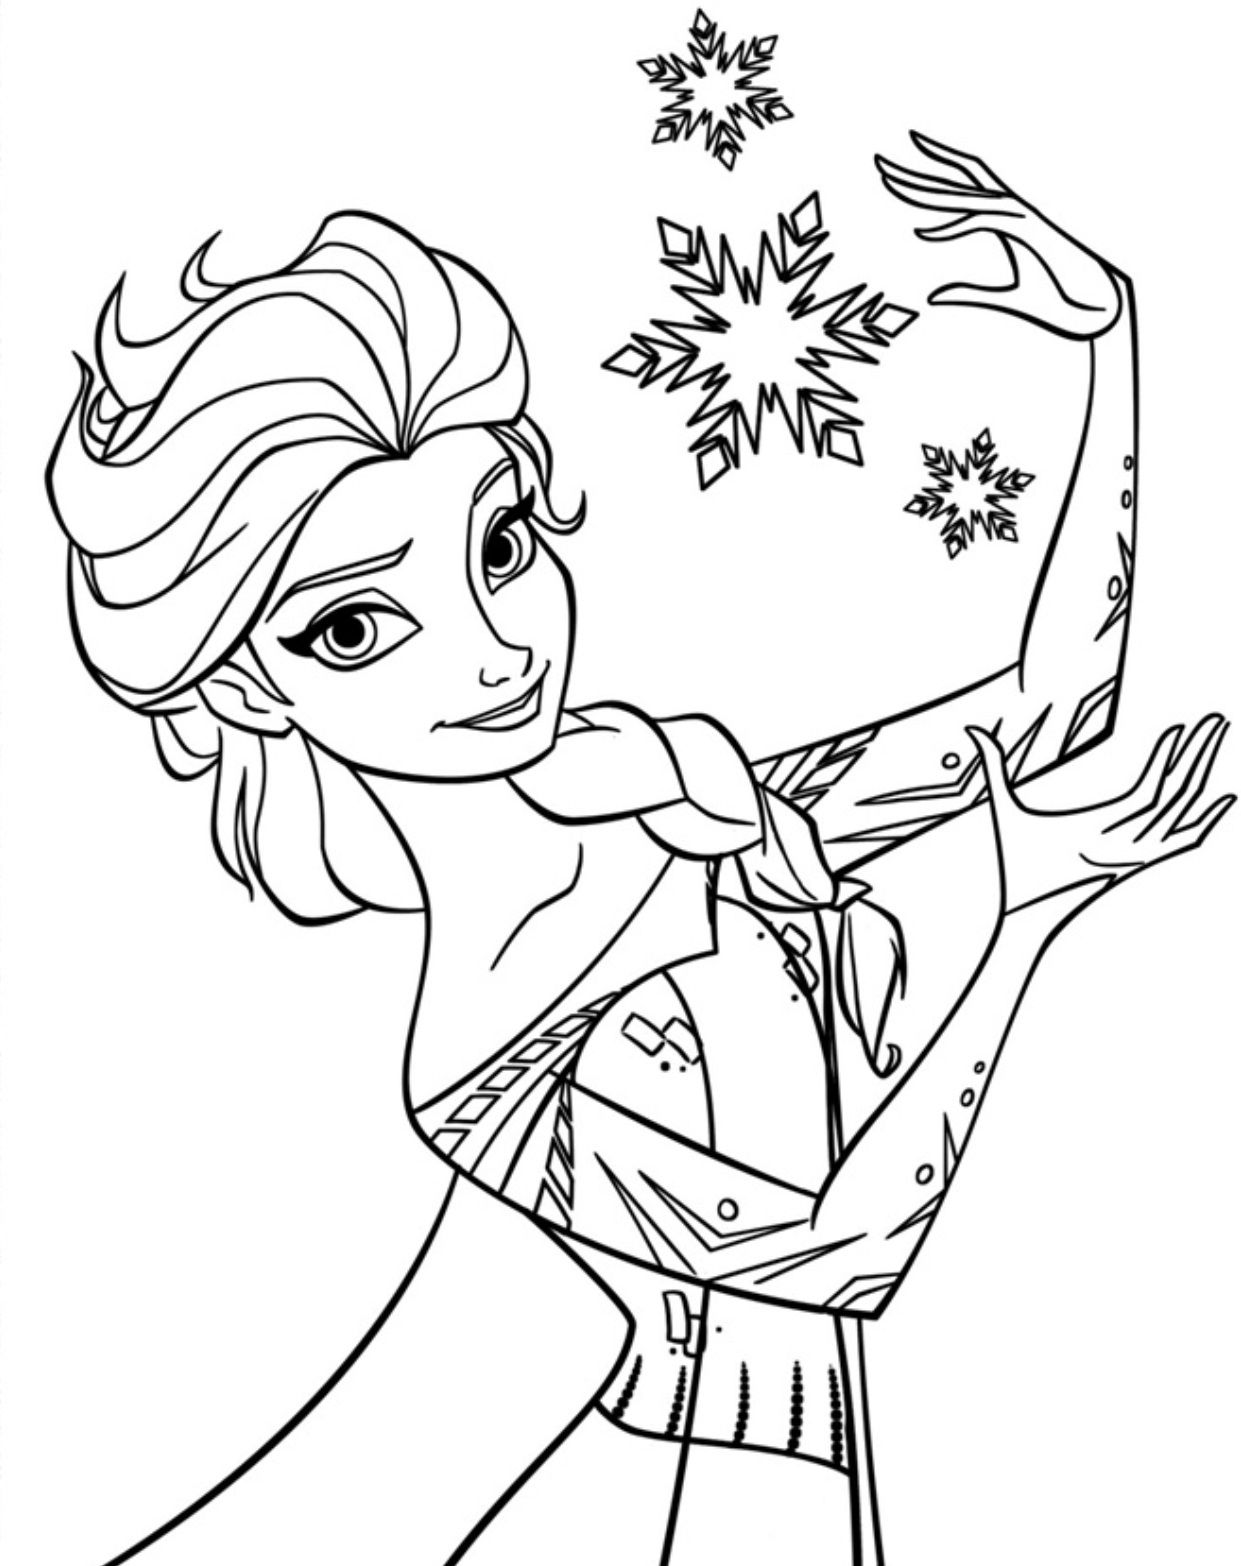 frozen colouring sheets to print bathroom Pinterest